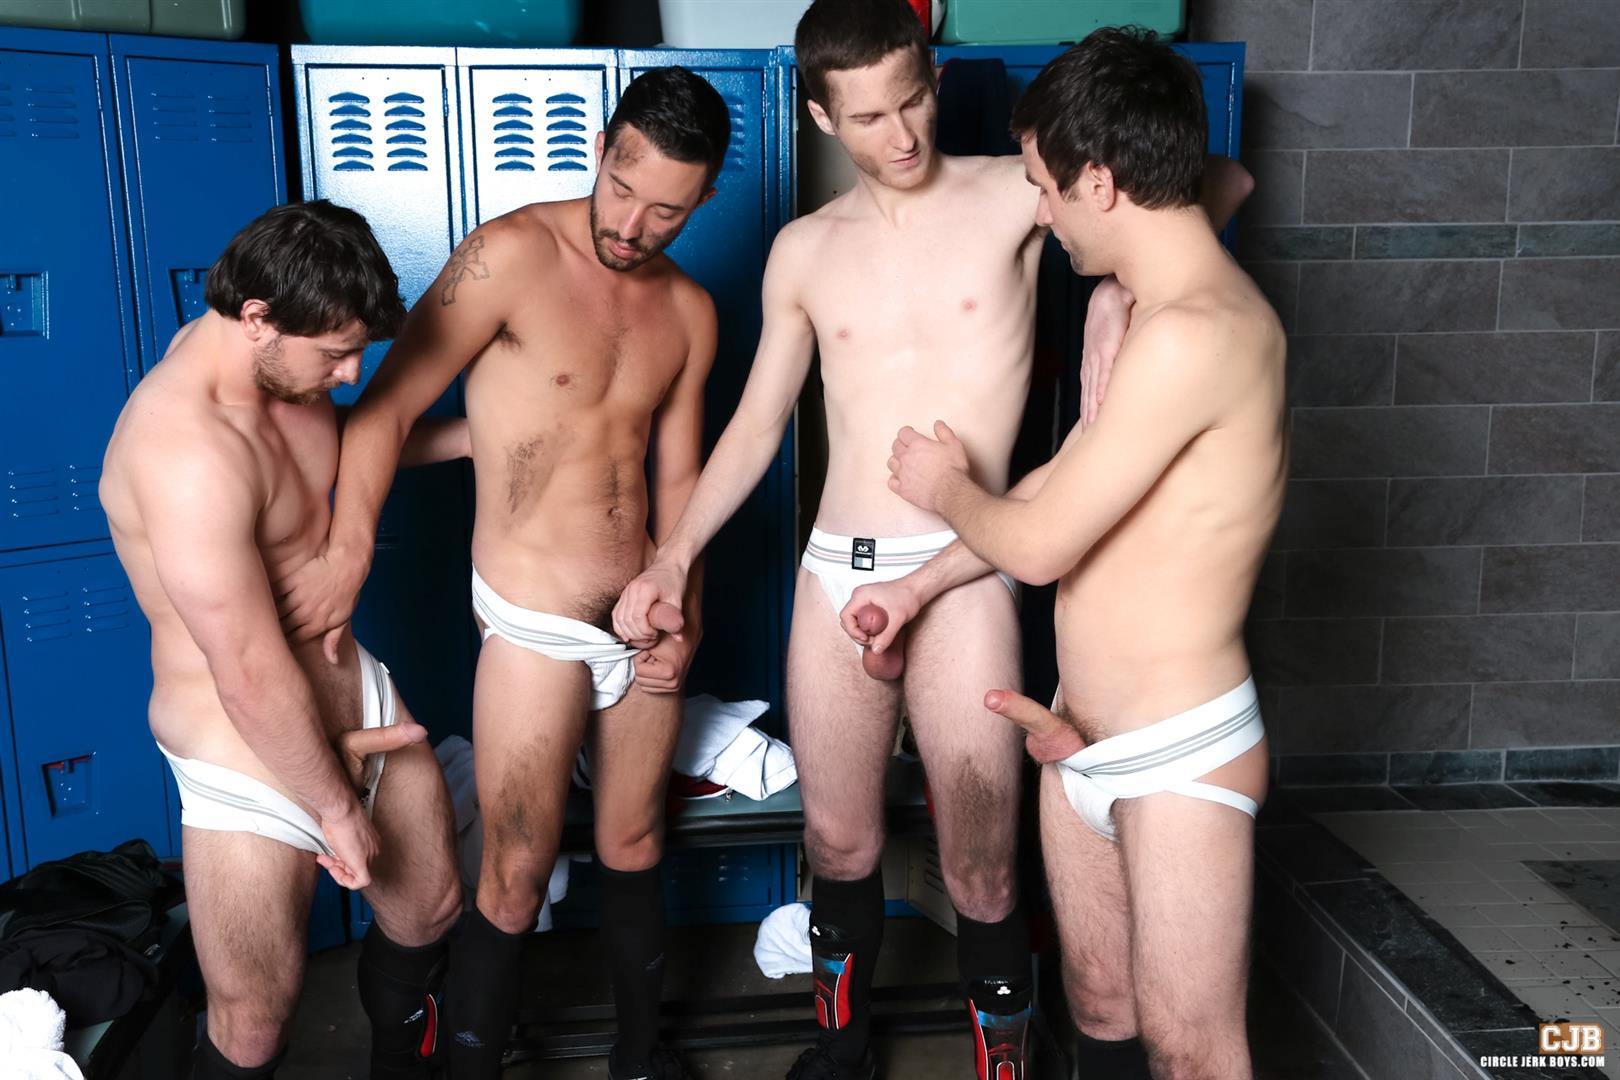 Circle-Jerk-Boys-Andrew-Collins-and-Isaac-Hardy-and-Josh-Pierce-and-Scott-Harbor-Soccer-Guys-Sucking-Cock-Amateur-Gay-Porn-04 After the Game, Soccer Plays Sucking Cock In The Locker Room